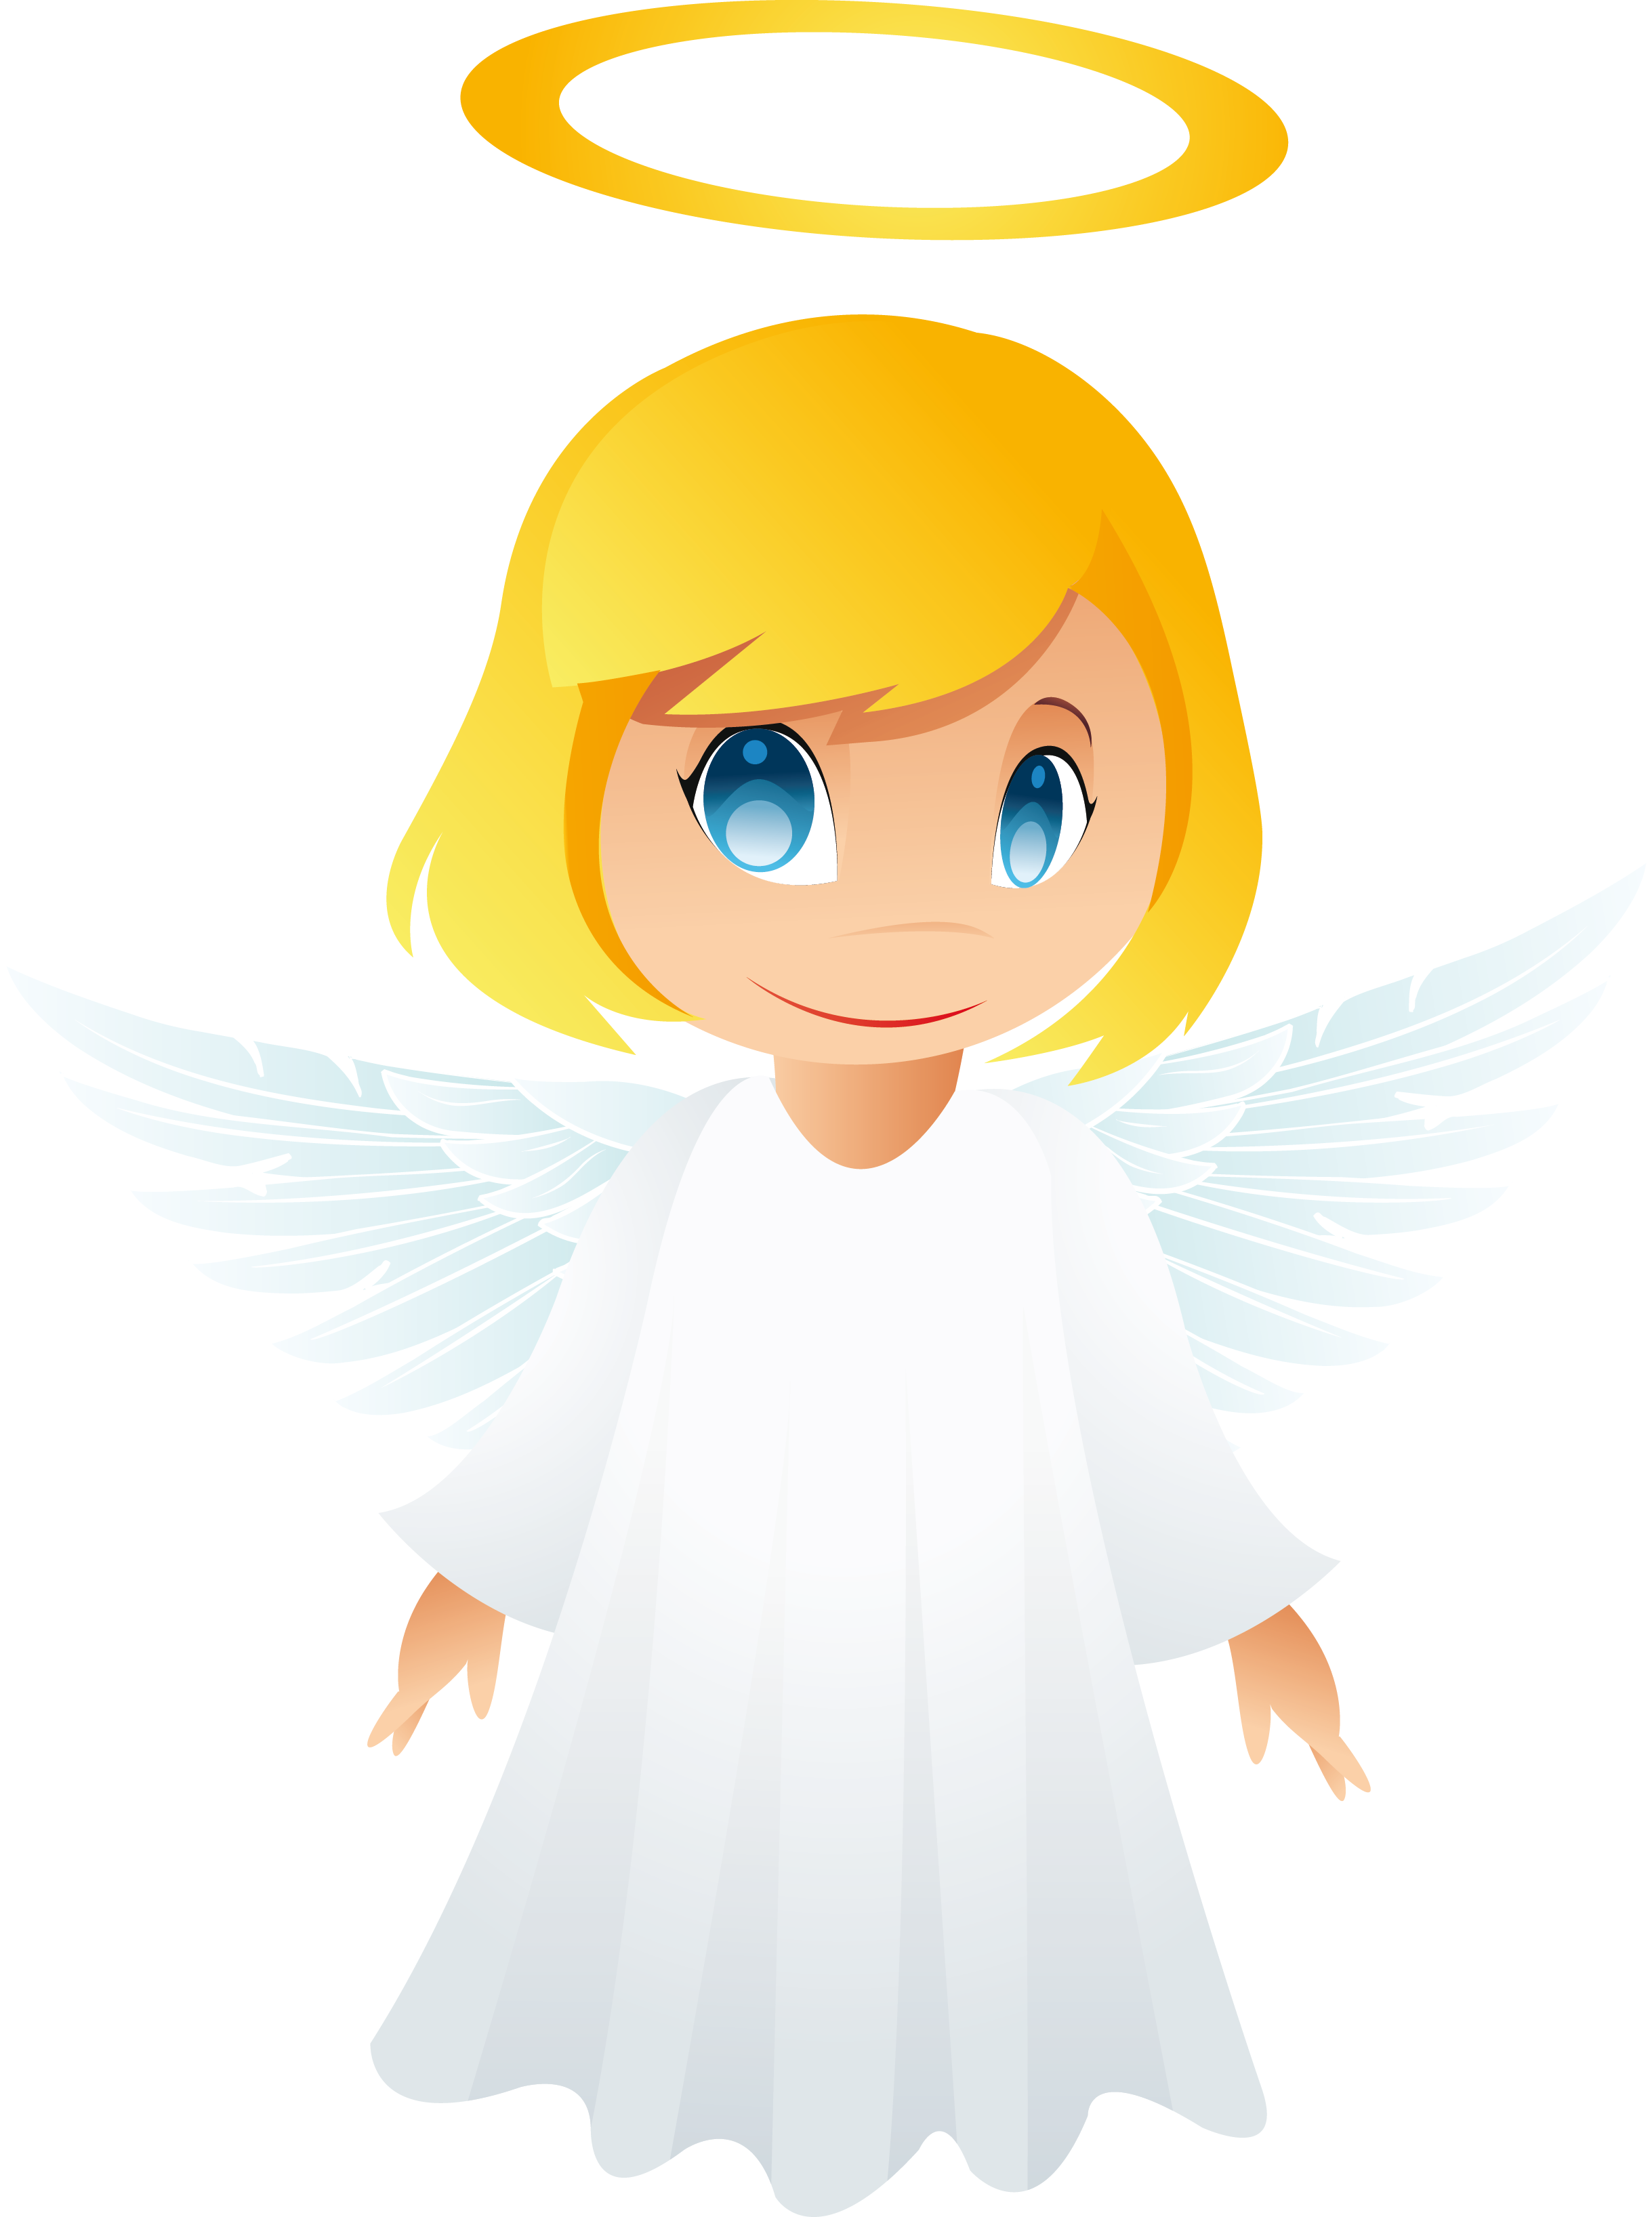 angel clipart free graphics of cherubs and angels the cliparts rh pinterest com angel clipart free angel clip art images free